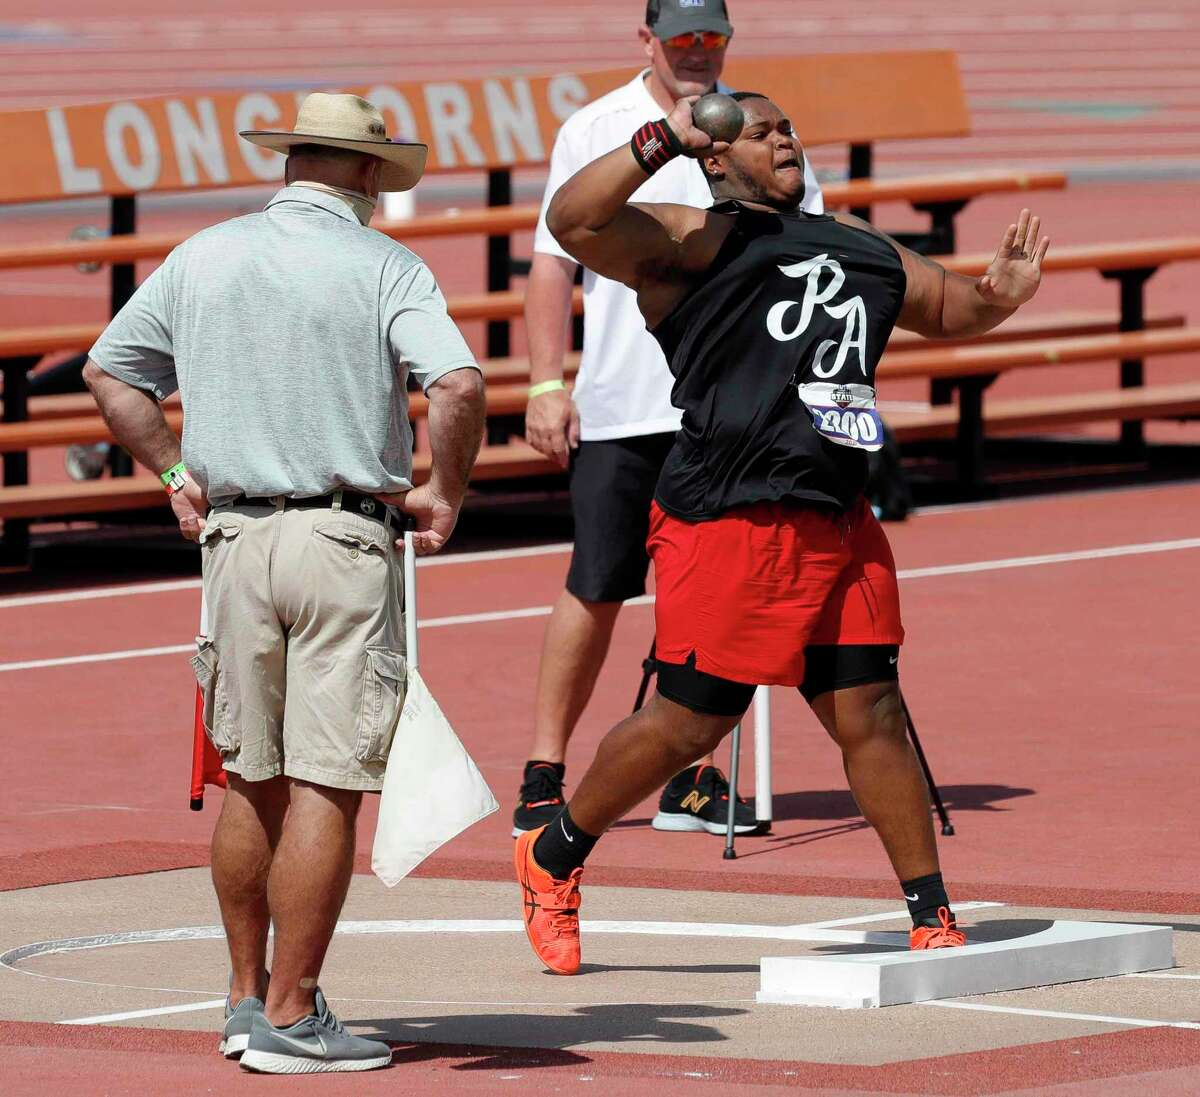 Trevonte Caines of Port Arthur Memorial competes in the boys shot put during the Class 5A UIL Track and Field Championships at Mike A. Myers Stadium, Friday, May 7, 2021, in Austin.